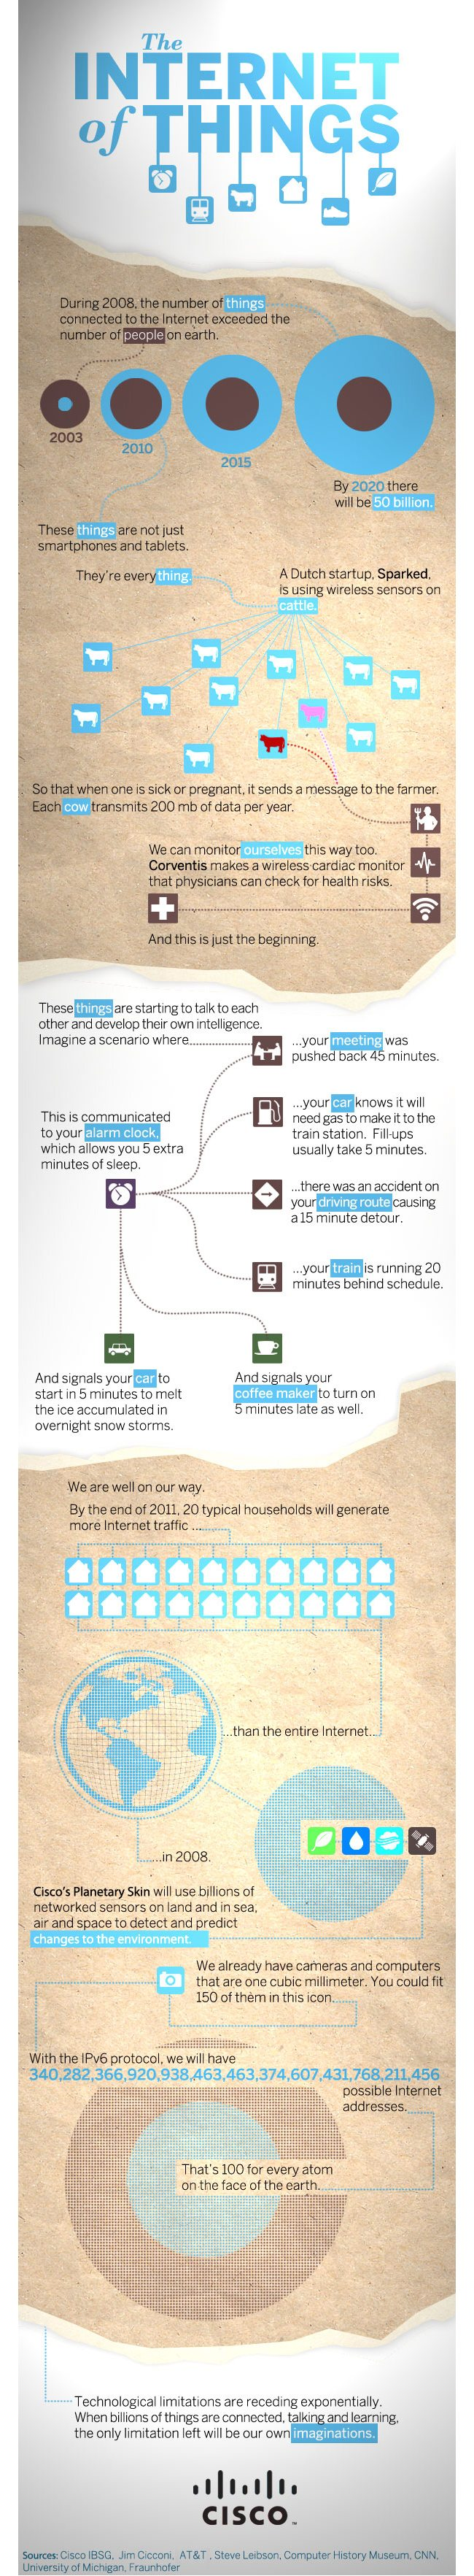 Internet of Things infographic